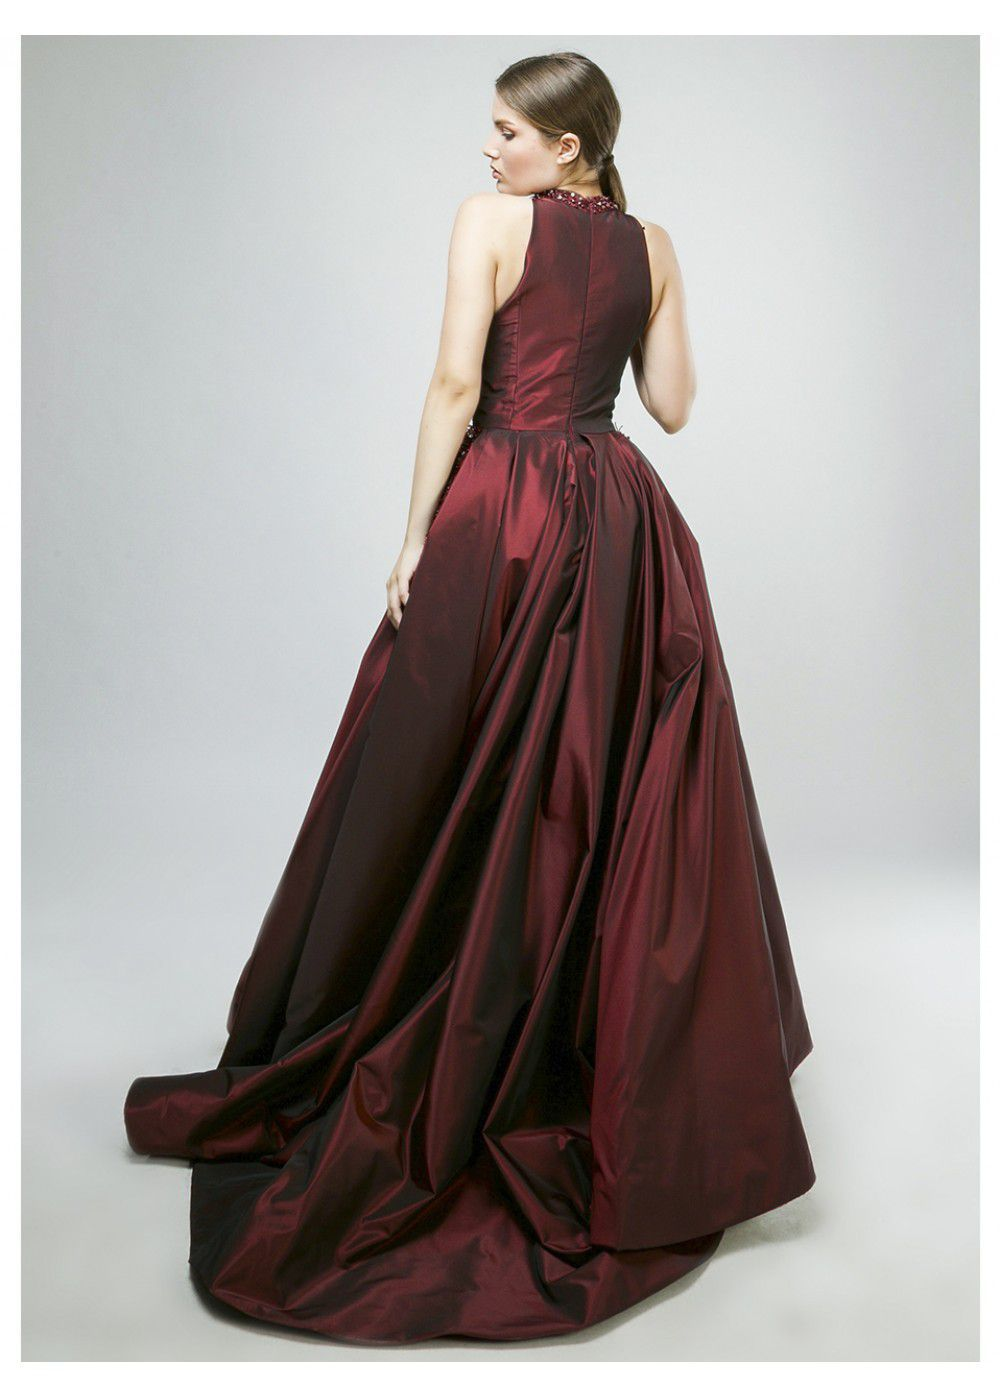 Maleone Bordeaux Dress with Stones